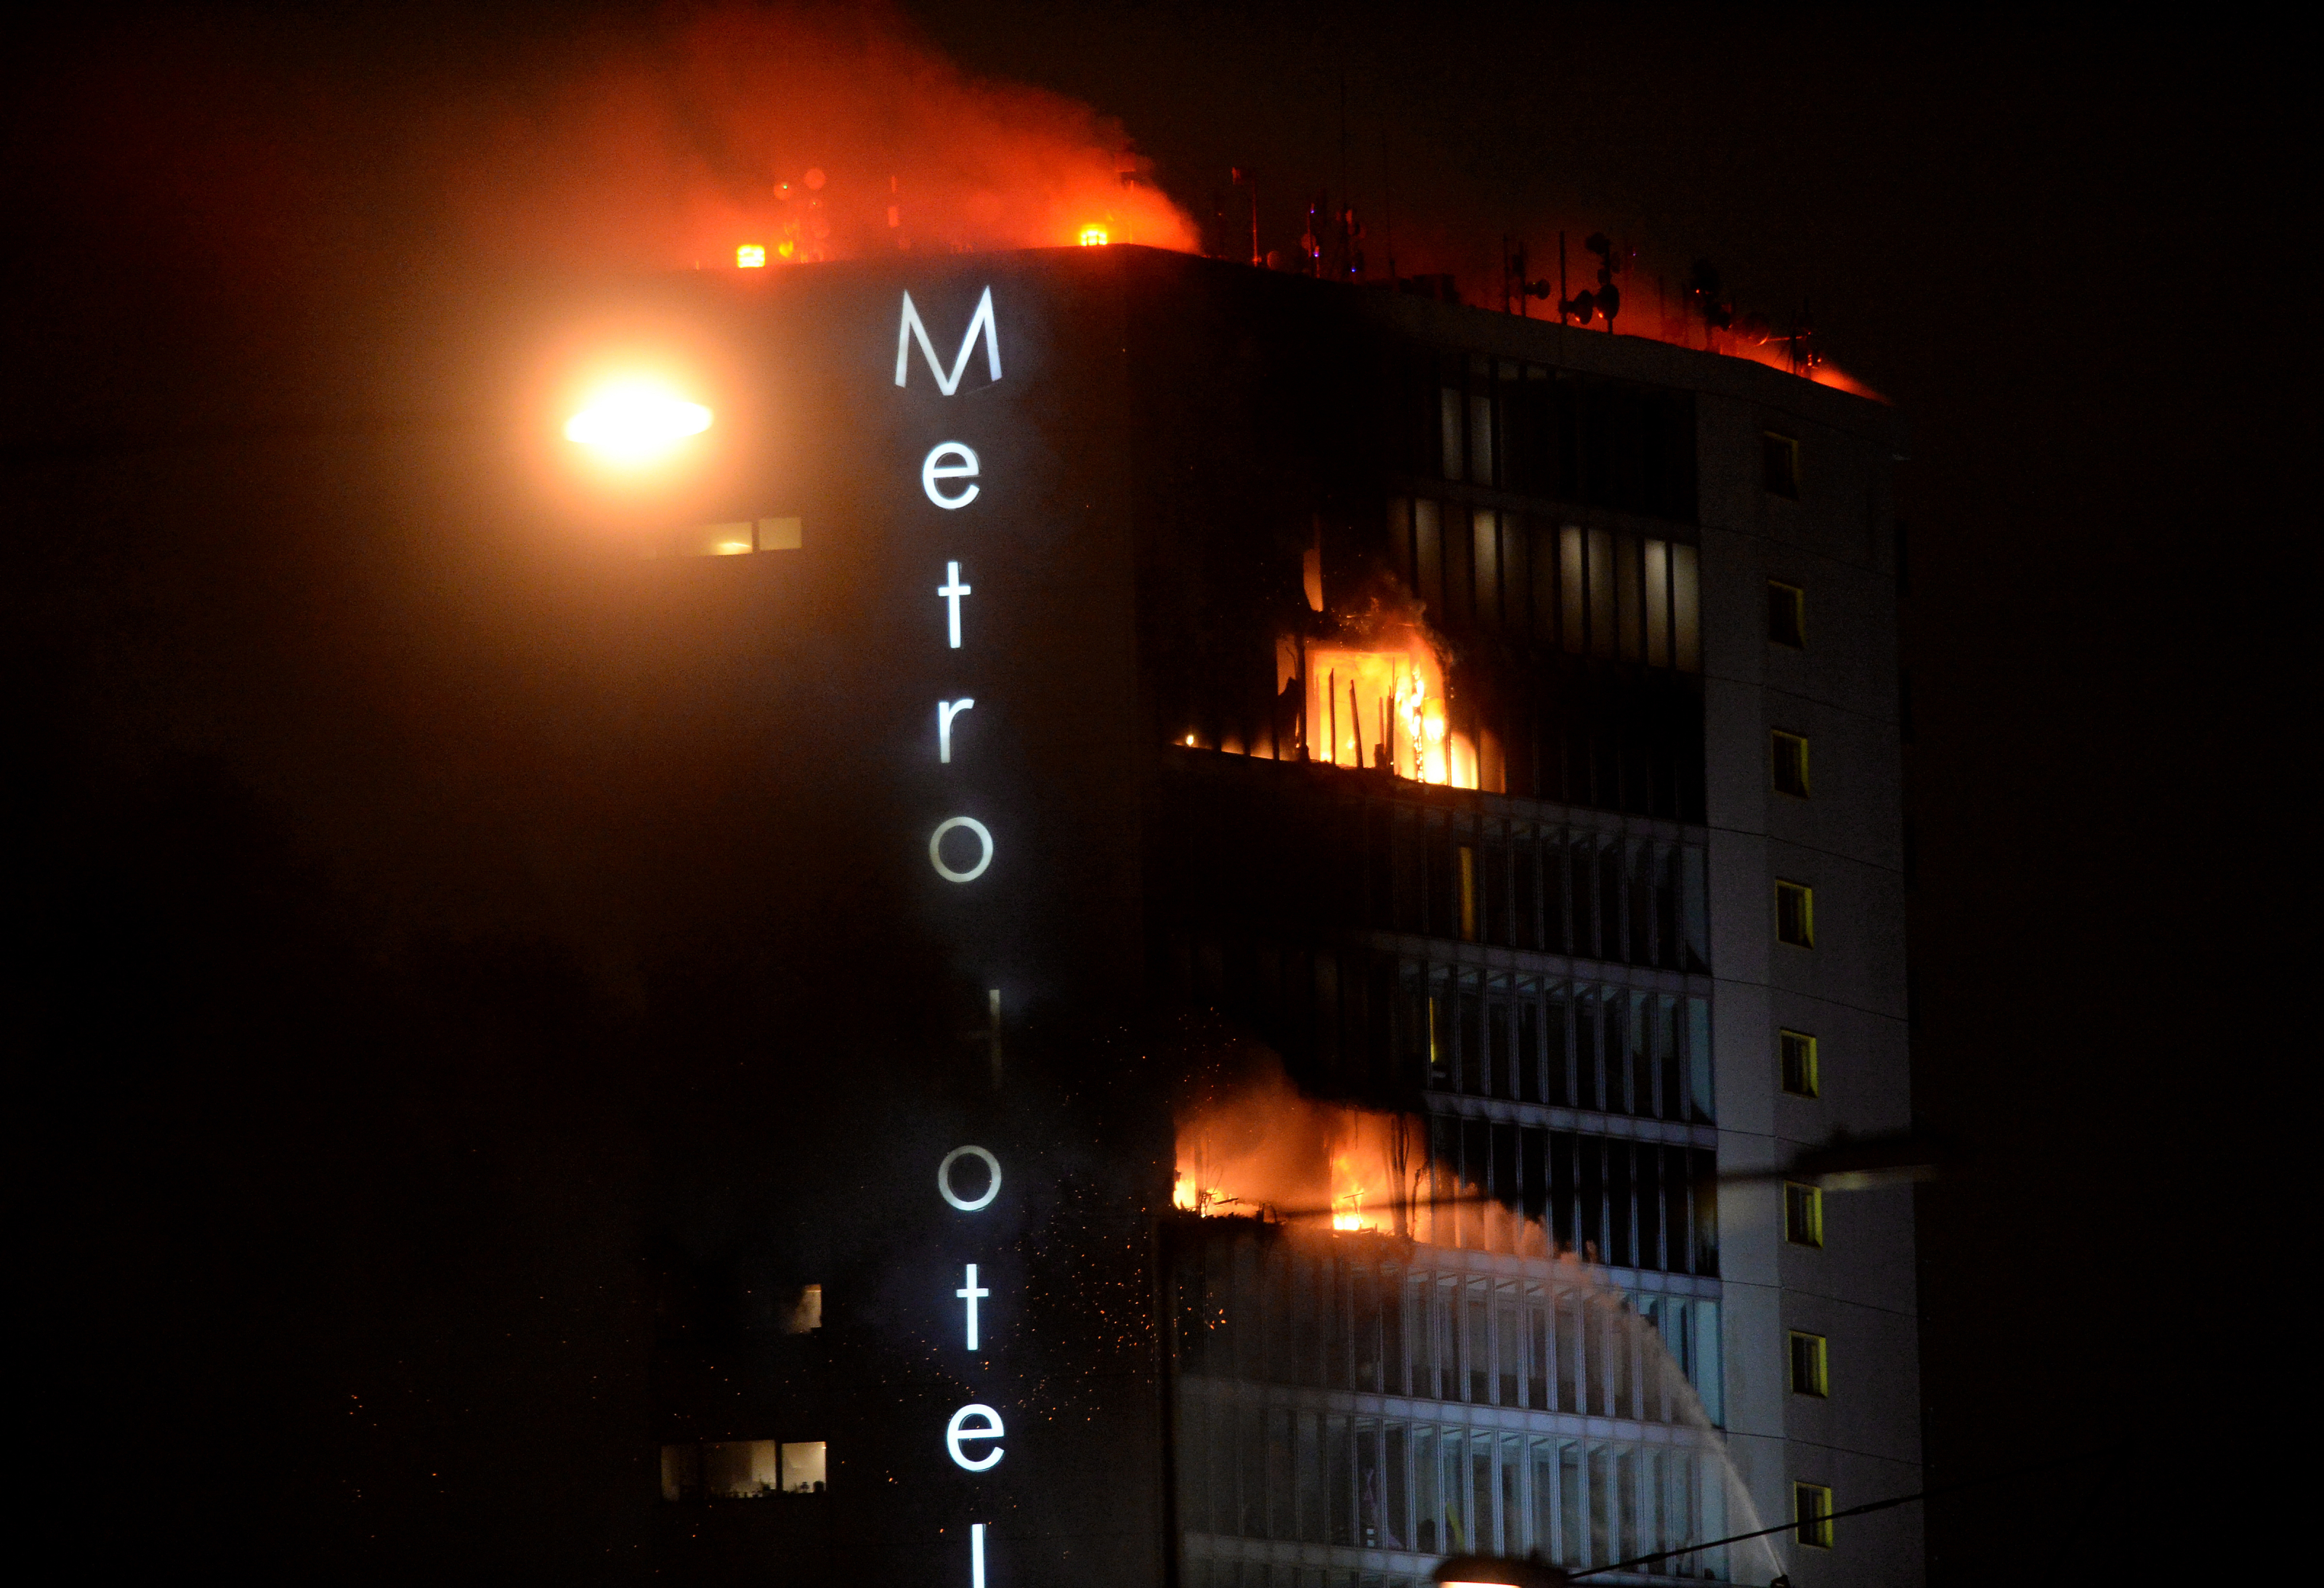 21 Mar 2018: General view of fire at Metro Hotel, Ballymun, Dublin. Picture: Caroline Quinn